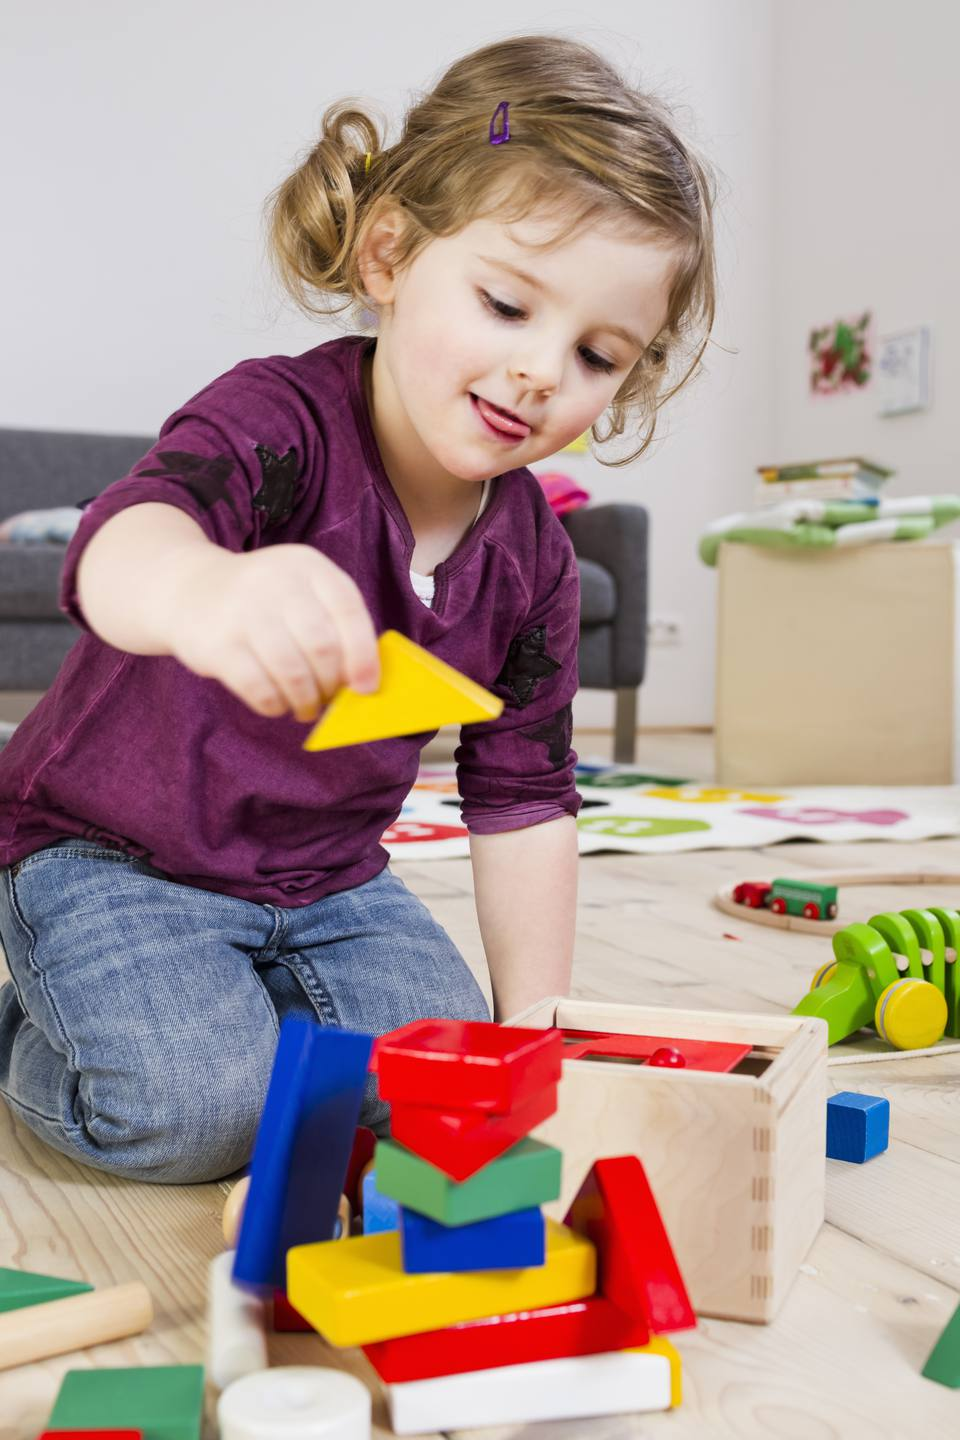 Toddler girl makes a tower with blocks